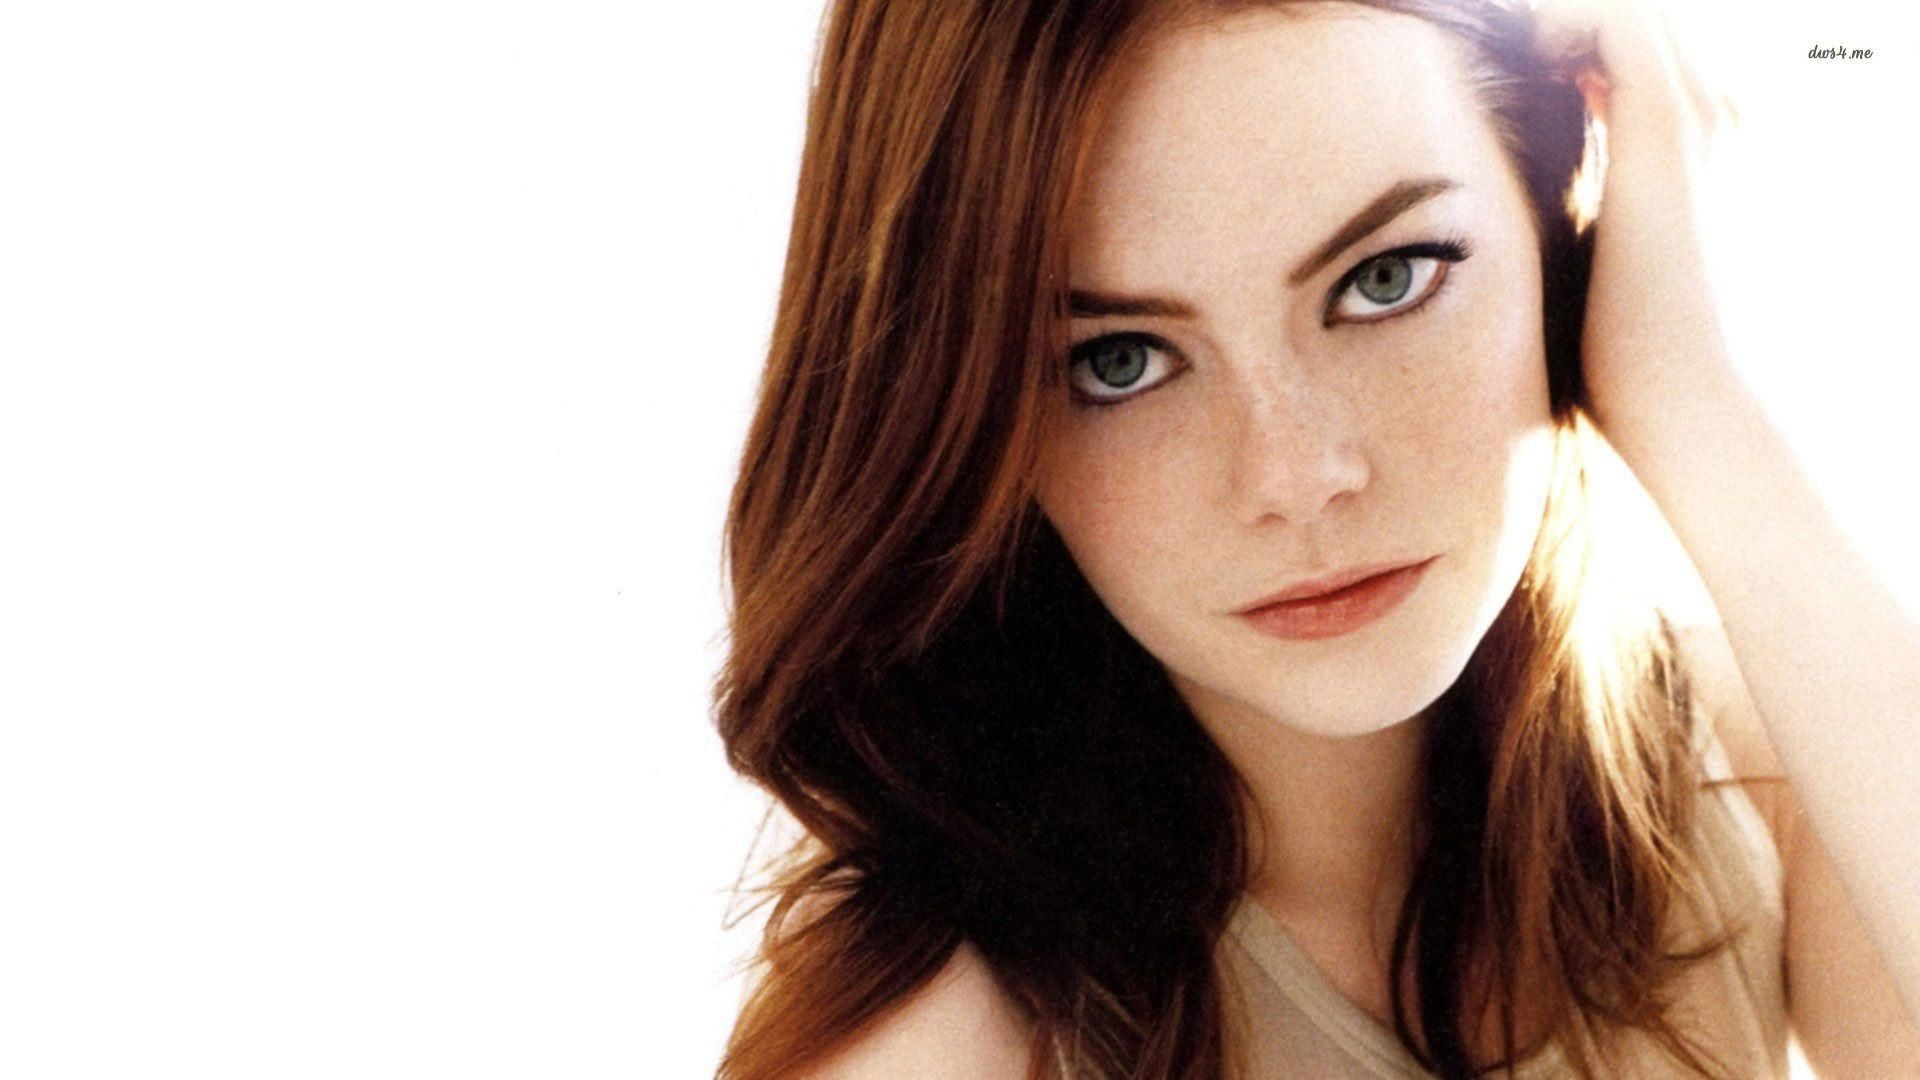 Pin By Margaret Hong On Wallpapers Emma Stone Stone Wallpaper